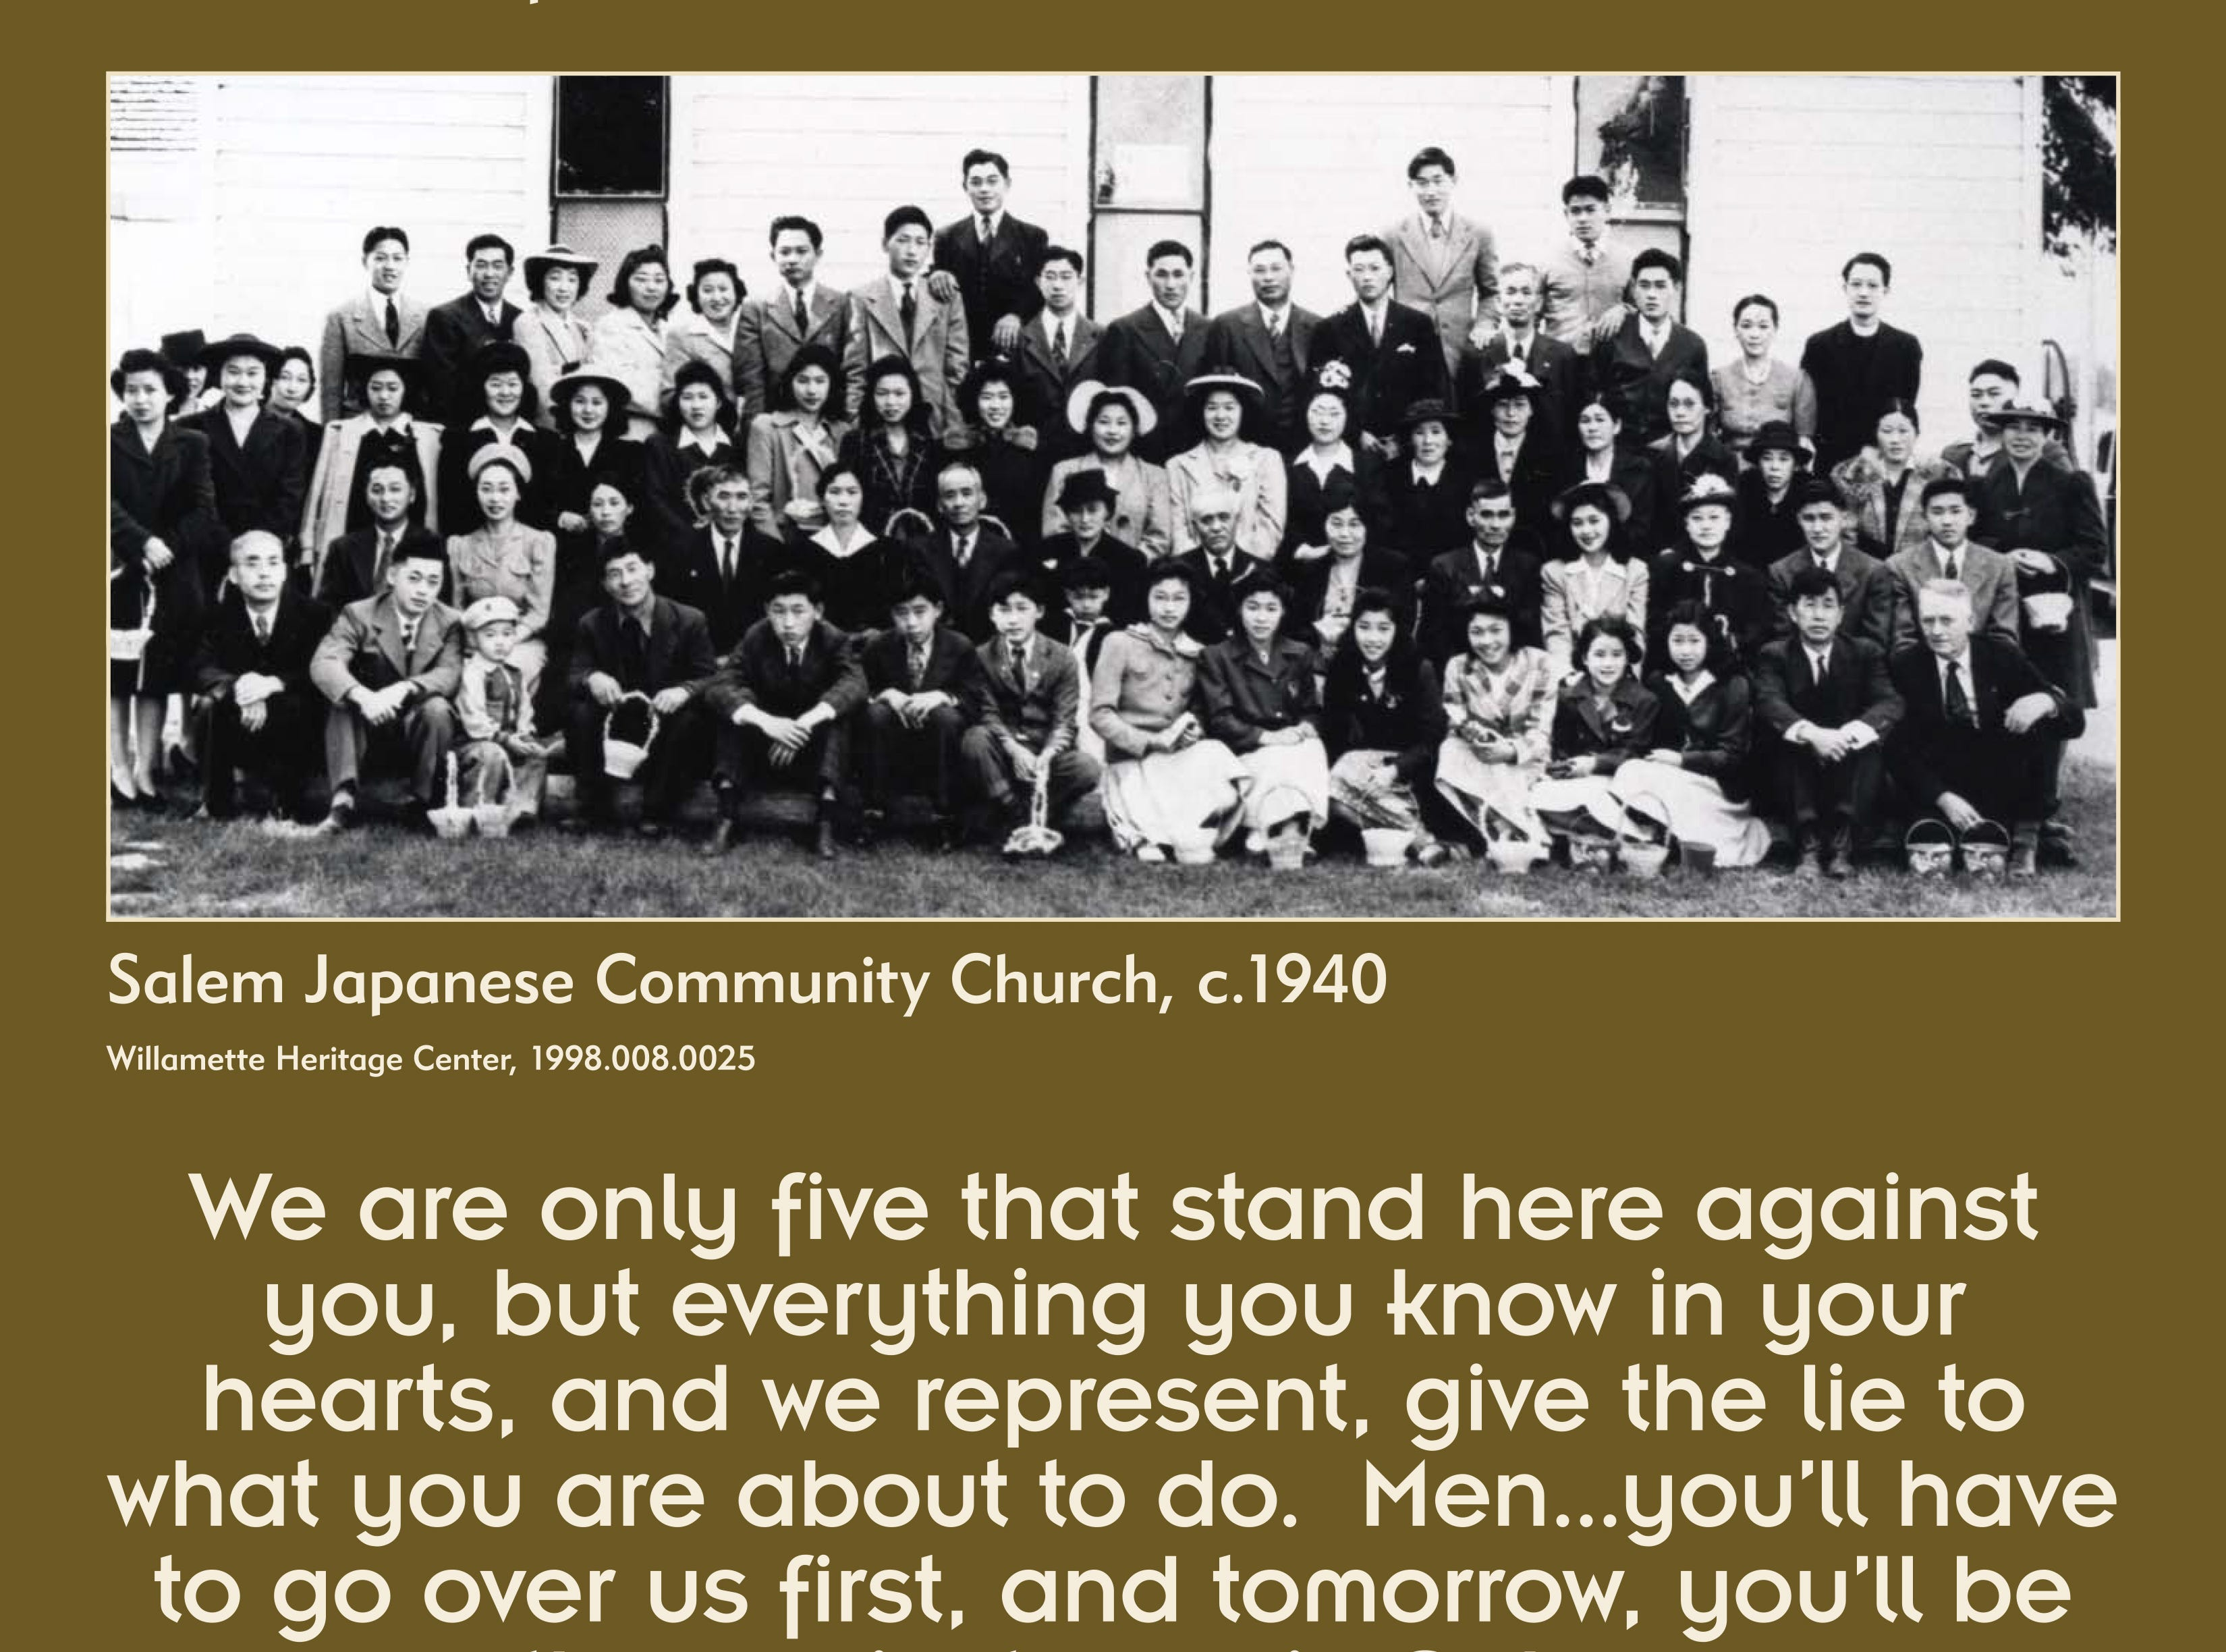 """Willamette Heritage Center celebrated how violence was averted at a Japanese church the night of Dec. 7, 1941, with a single display panel in its 2016 exhibit """"Courage and Compassion: Our Shared Story of the Japanese American WWII Experience."""""""